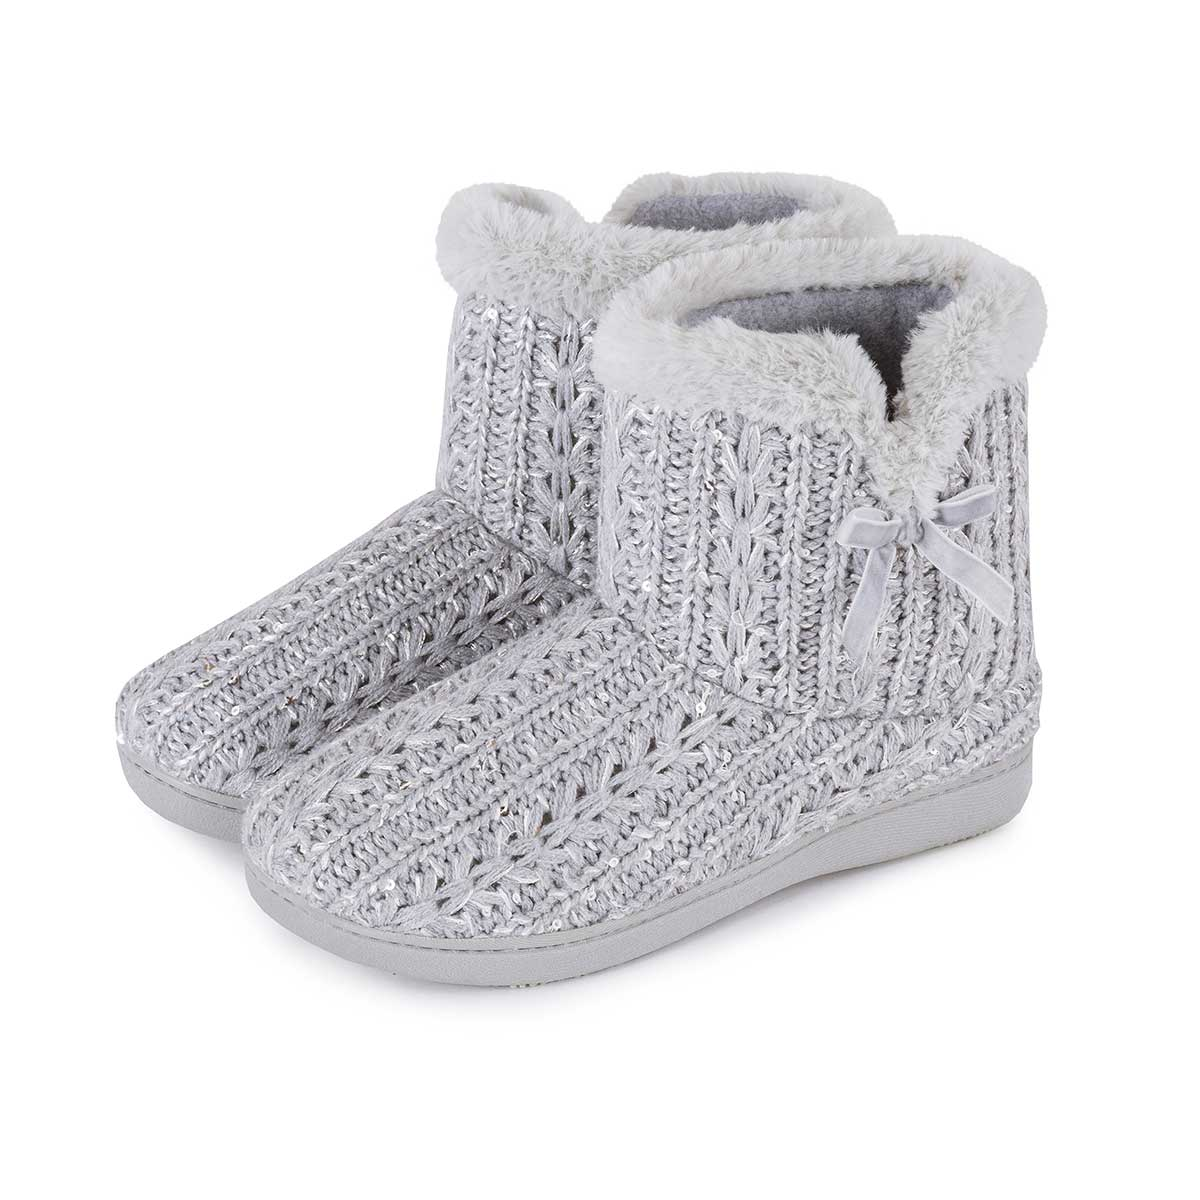 Womens Bootie Slippers Made with soft and cozy material, our women's bootie slippers are a great companion for your feet in chilly weather. Browse our vast collection of pairs of women's bootie slippers from brands like UGG, Minnetonka and MUK LUKS.